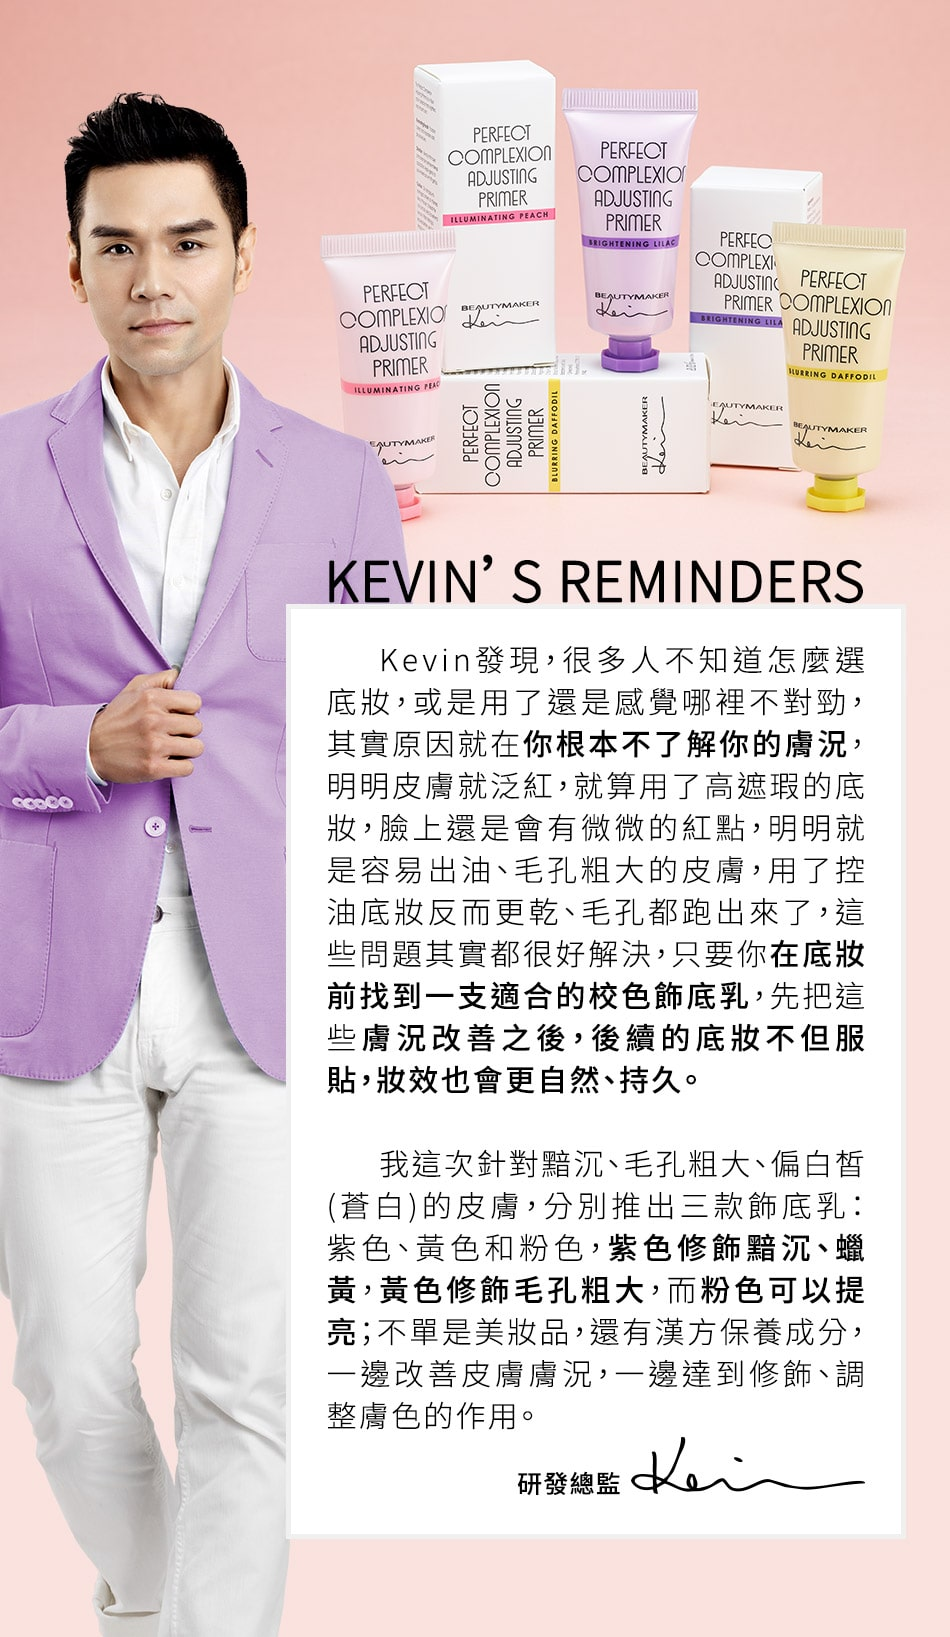 Perfect Complexion Adjusting Primer - Kevin